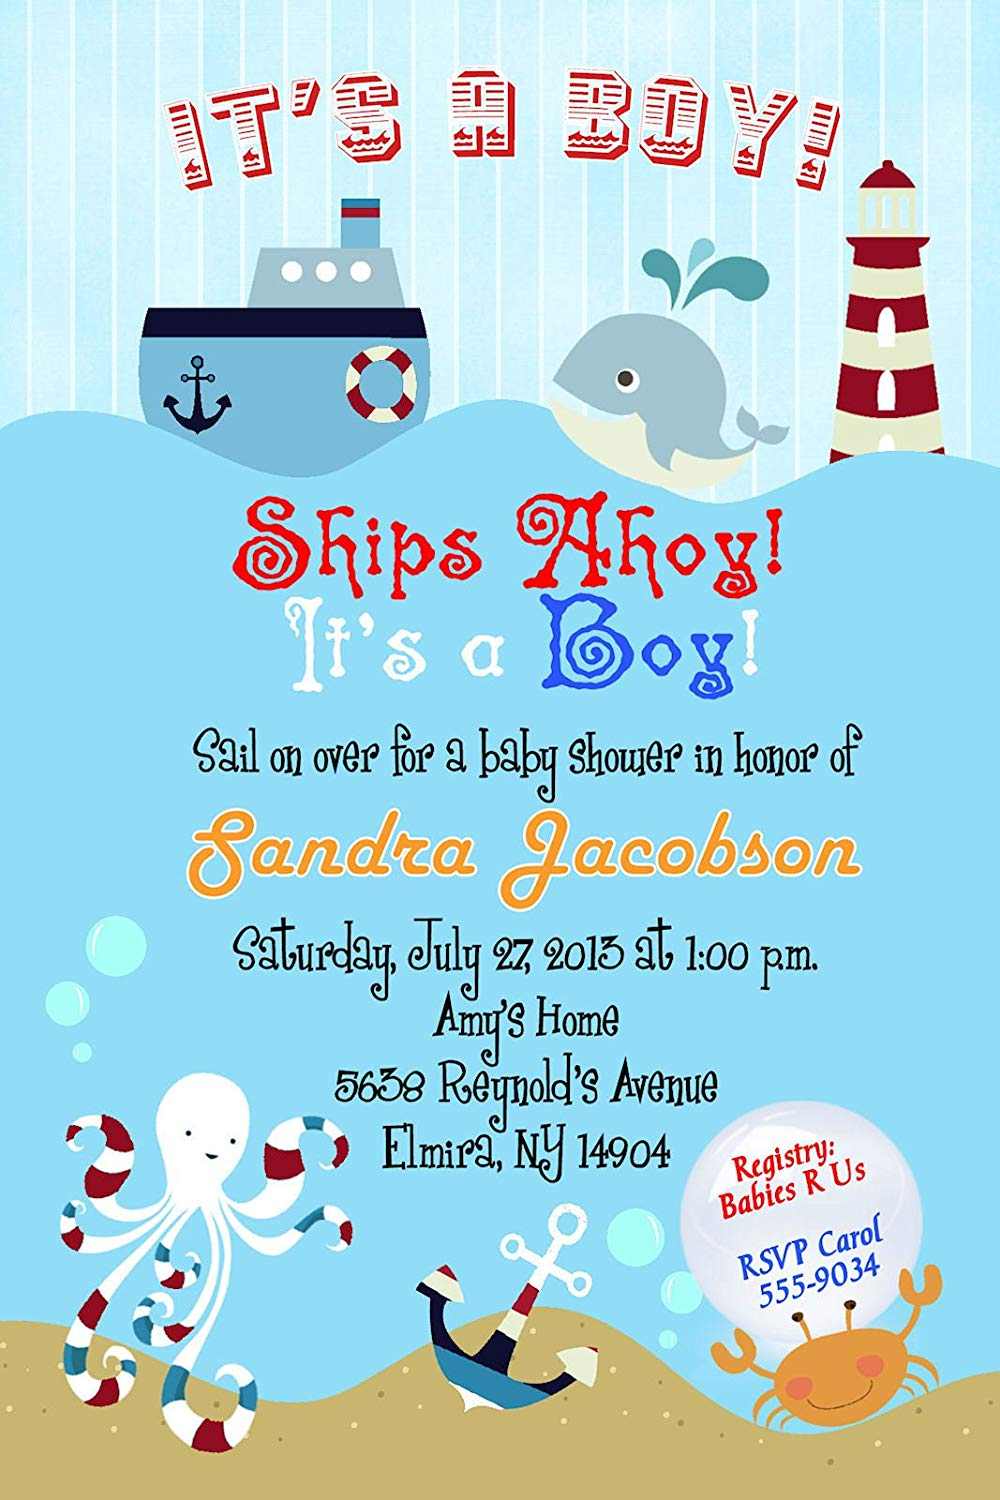 Full Size of Baby Shower:baby Shower Invitations For Boys Homemade Baby Shower Decorations Baby Shower Ideas Nursery Themes For Girls Cheap Invitations Baby Shower Baby Shower Invitations Baby Shower Ideas Baby Shower Decorations Free Baby Shower Ideas